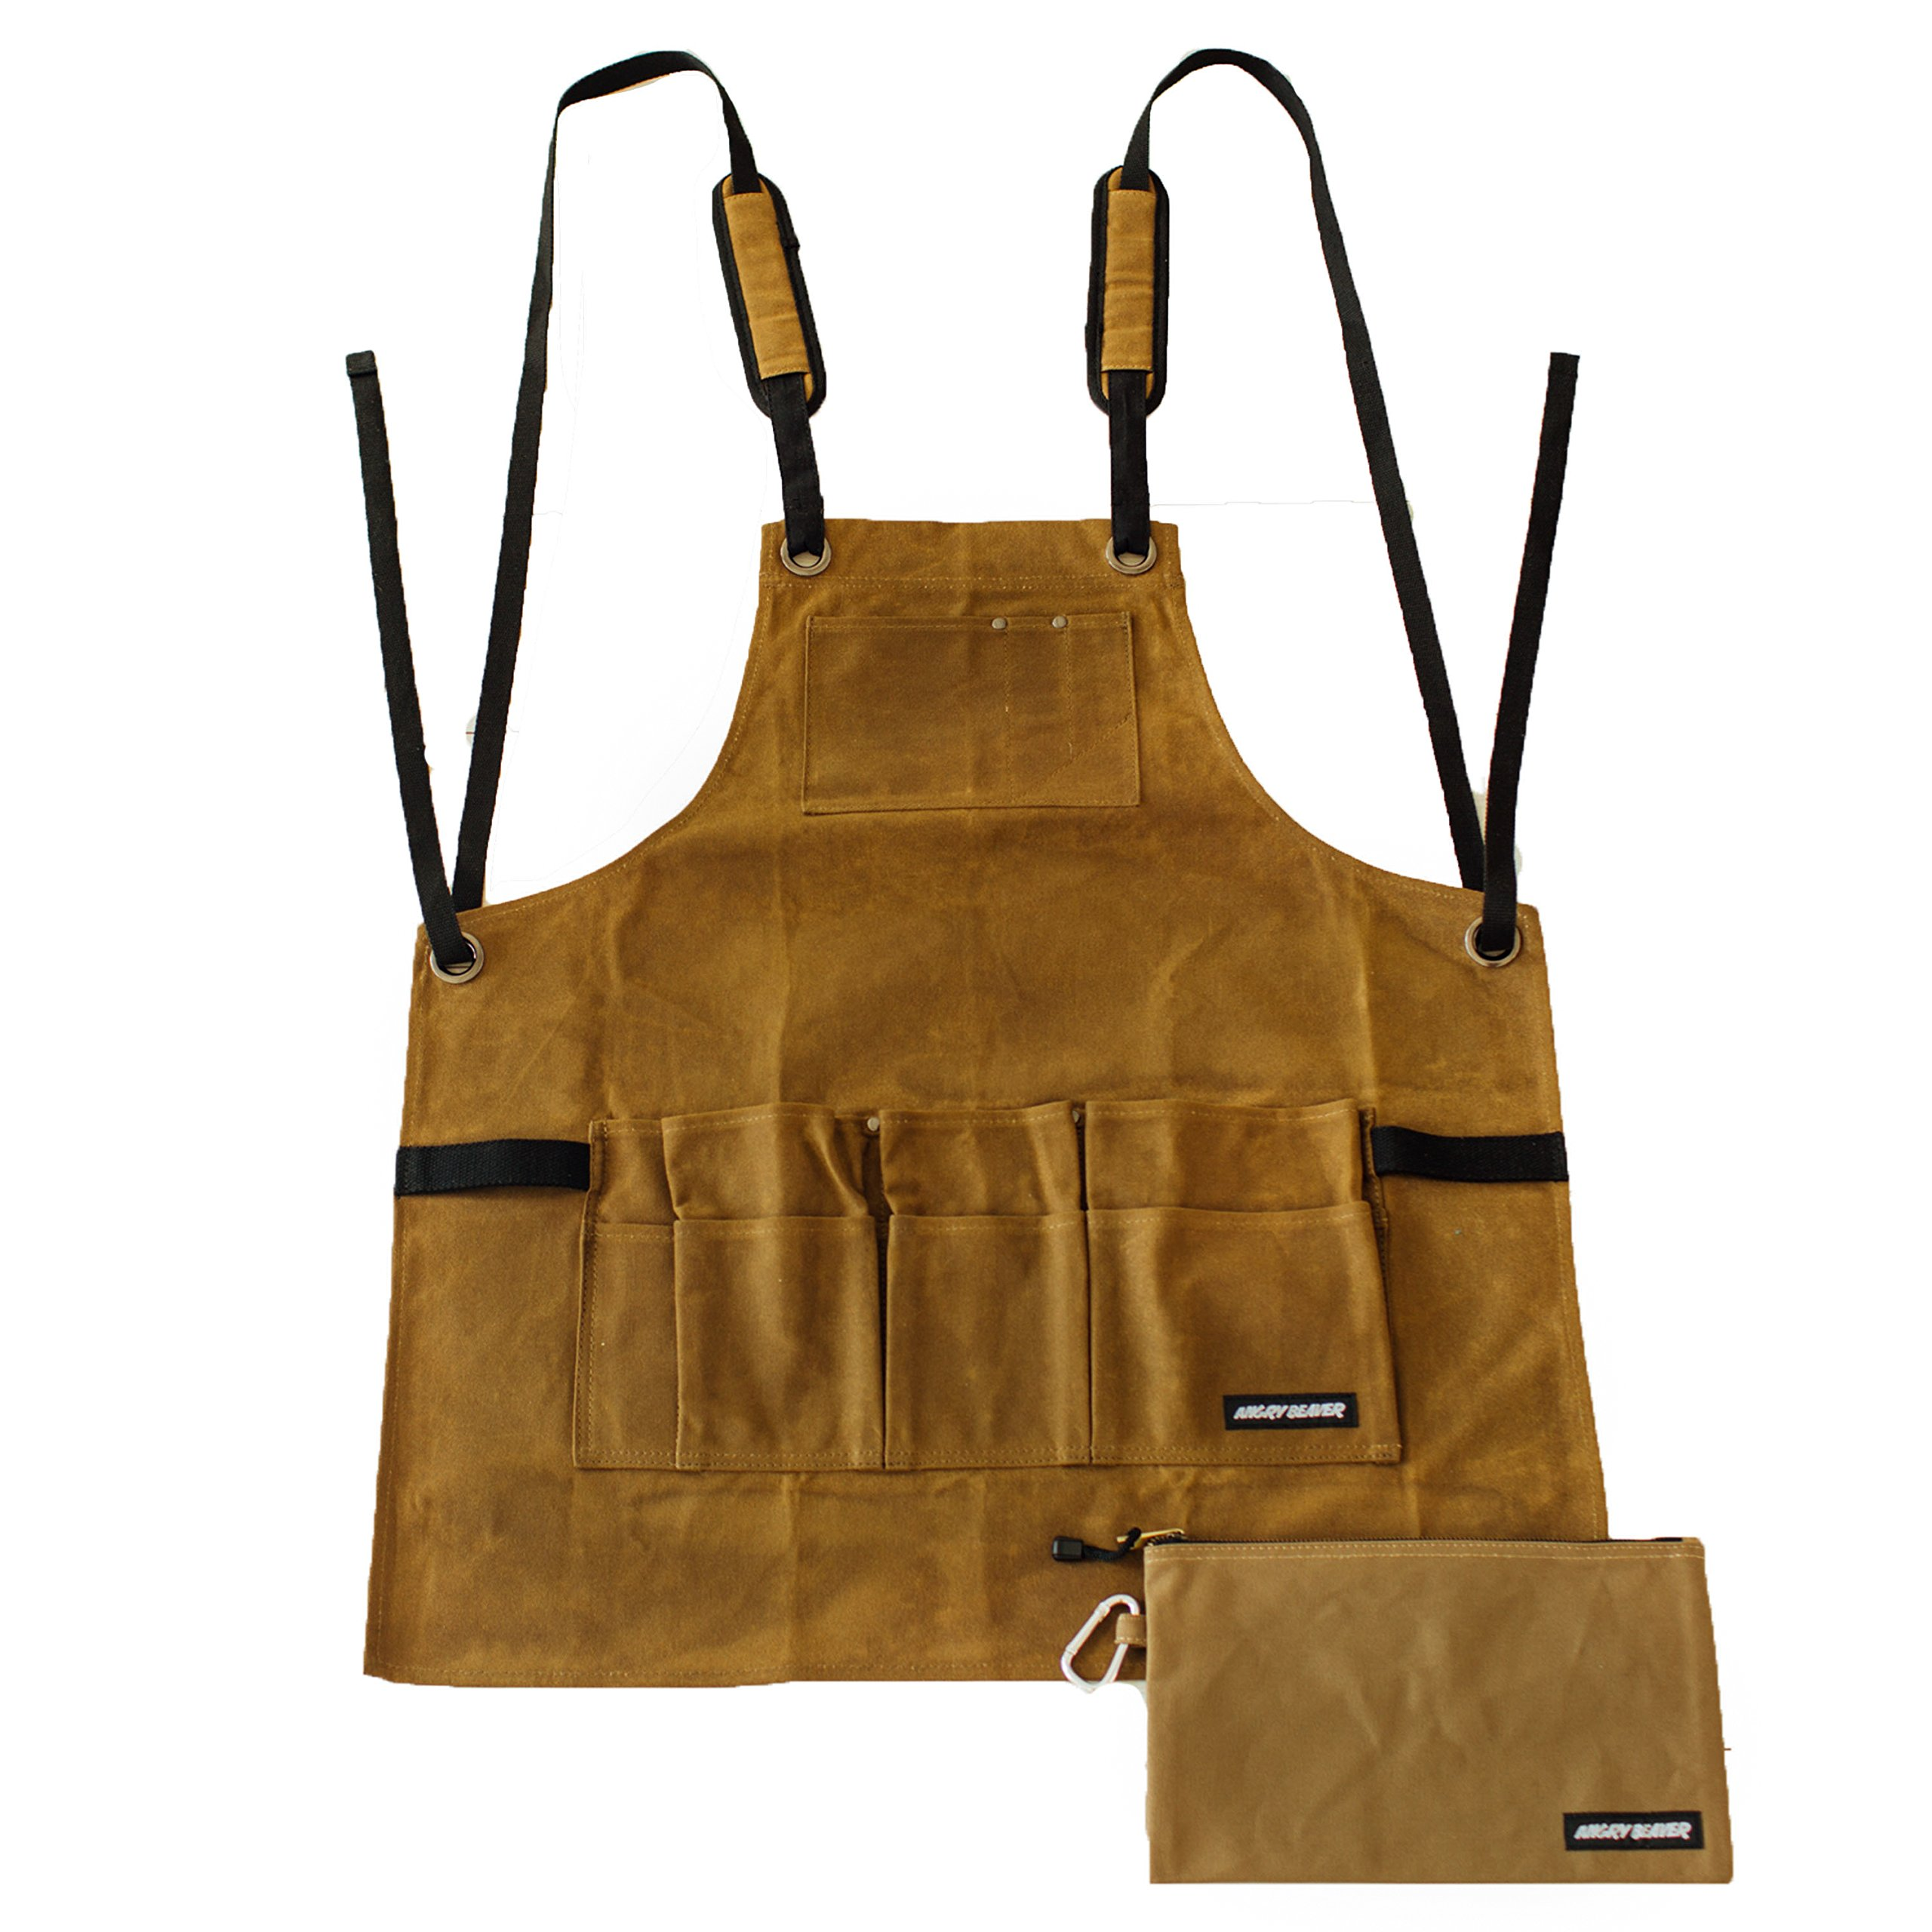 Work Shop Apron by Angry Beaver | BONUS Canvas Zipper Tool Pouch | Heavy Duty Utility Waxed Canvas Bib Apron with Tool and Chest Pockets | Tool Apron Cross-Back Straps & Adjustable M to XXL